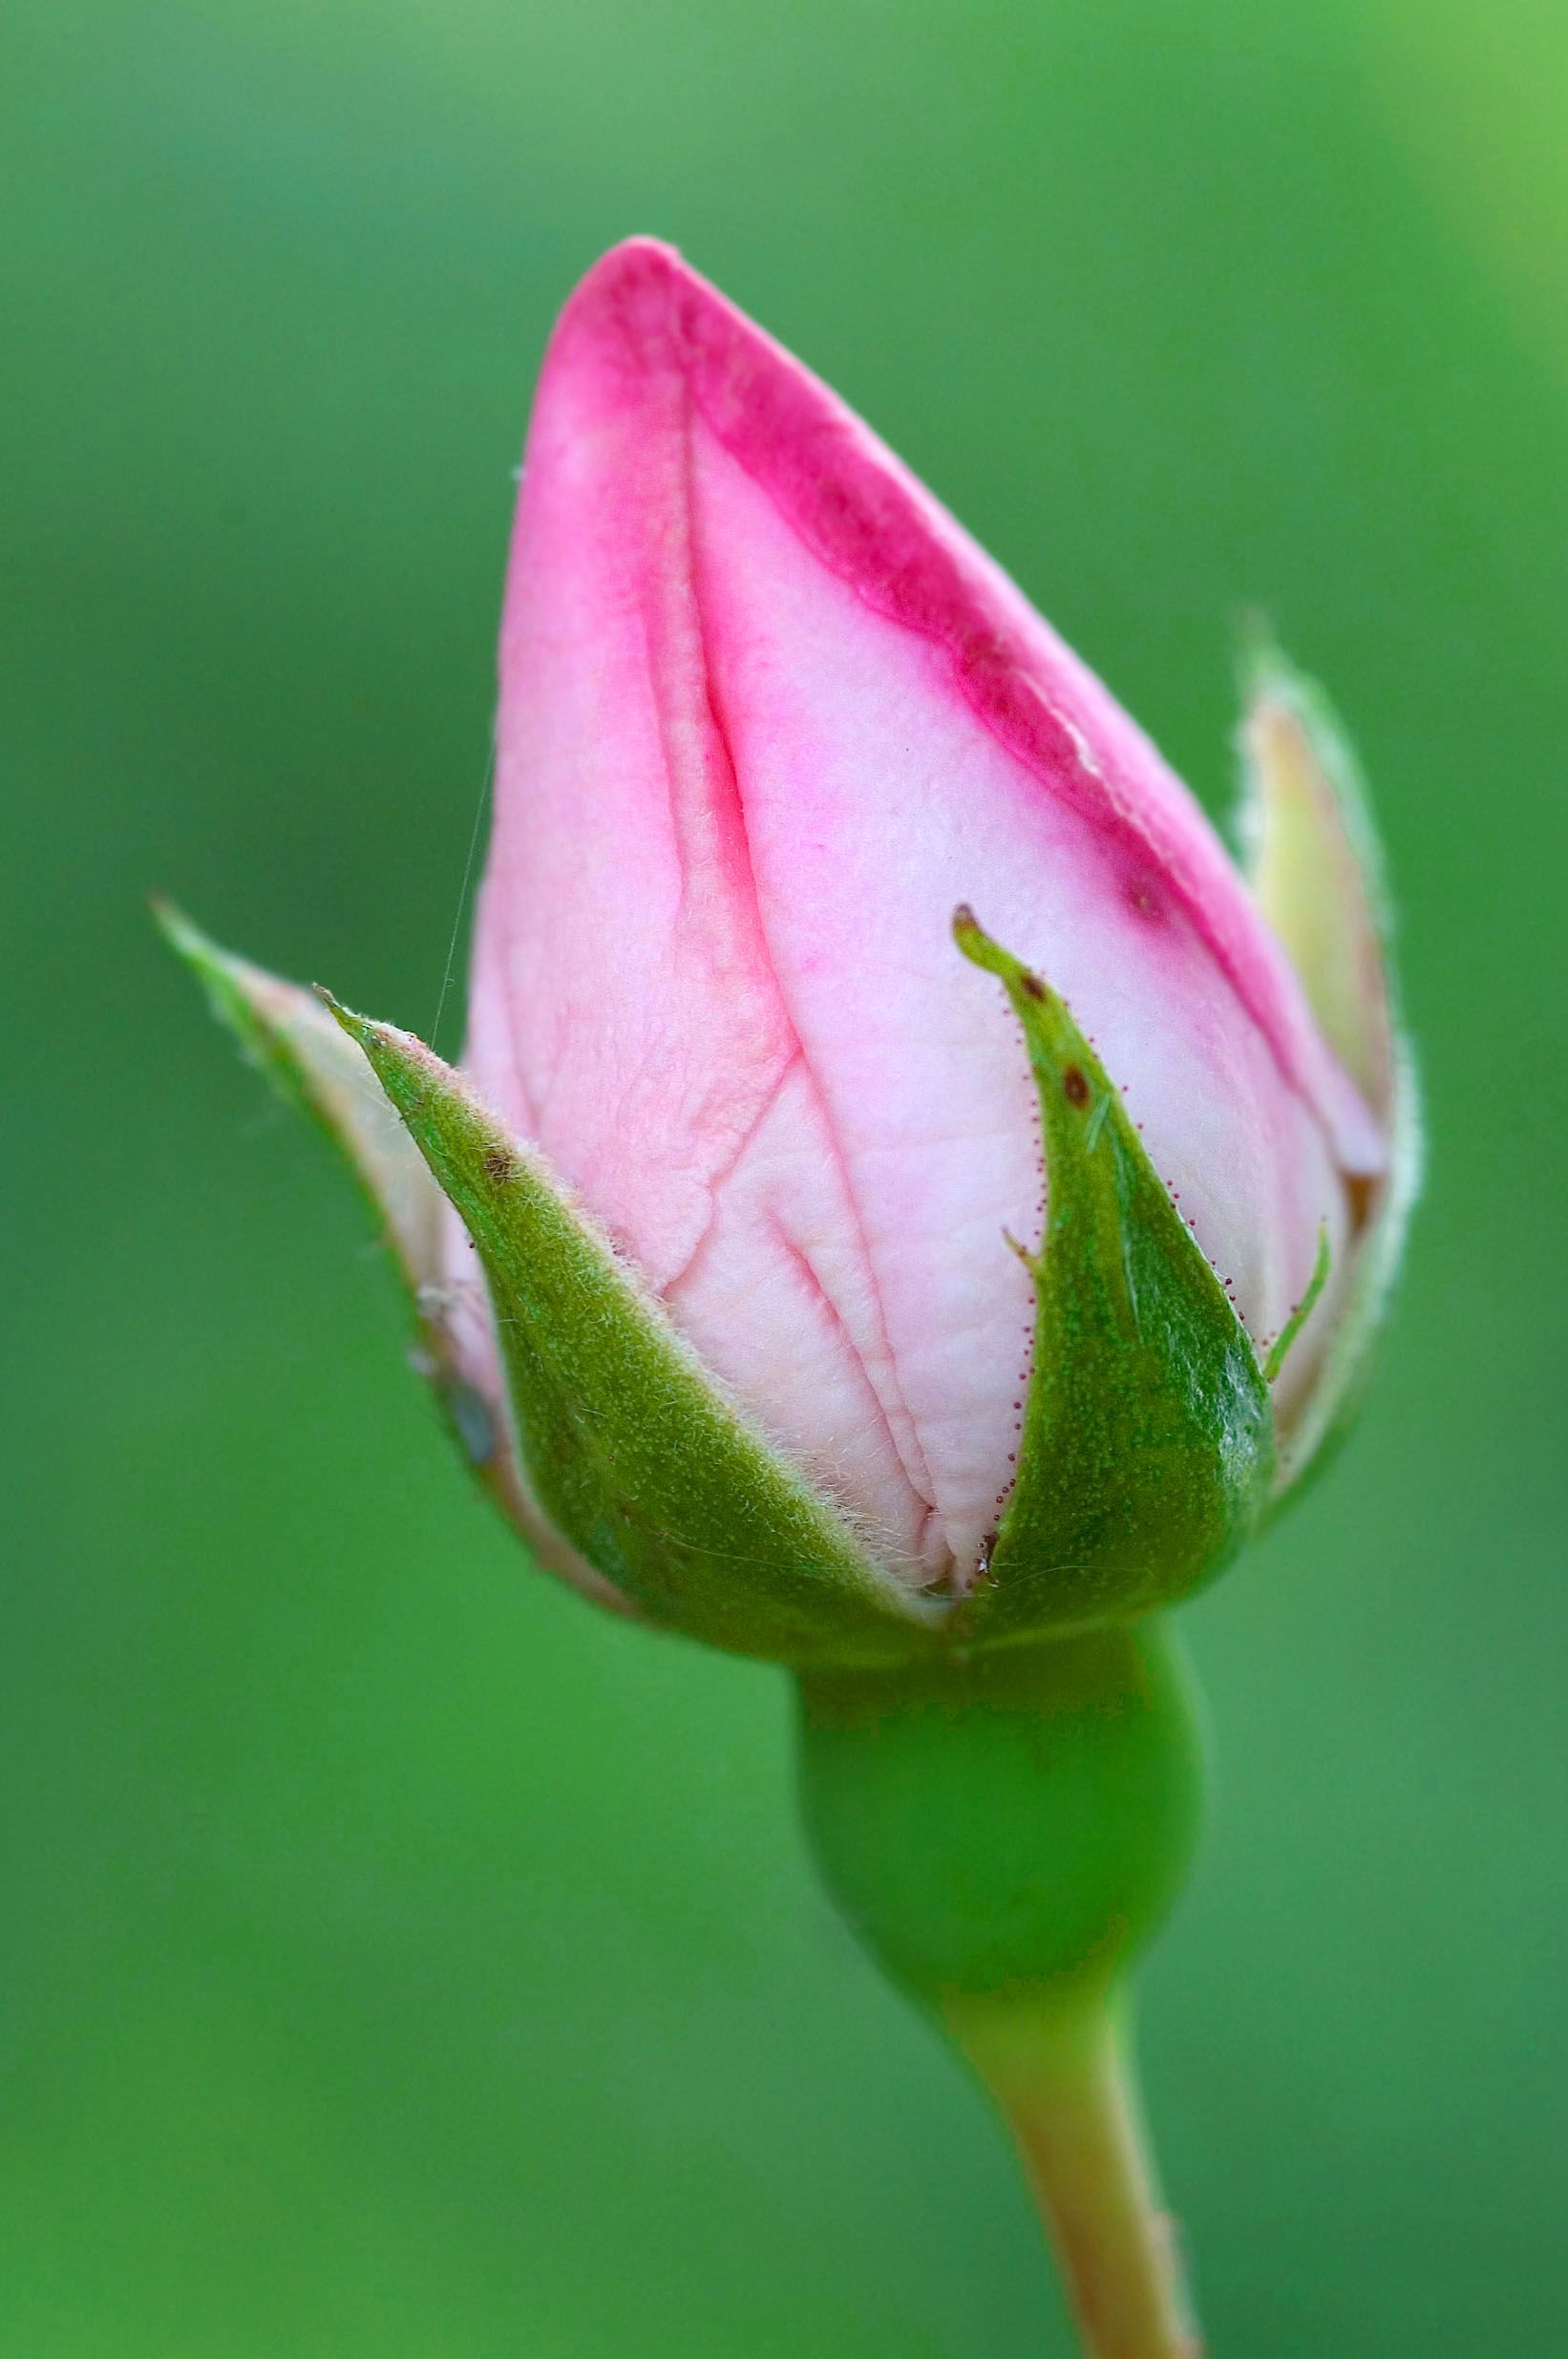 The most beautiful pink rose buds description rose budg the most beautiful pink rose buds description rose budg dhlflorist Choice Image